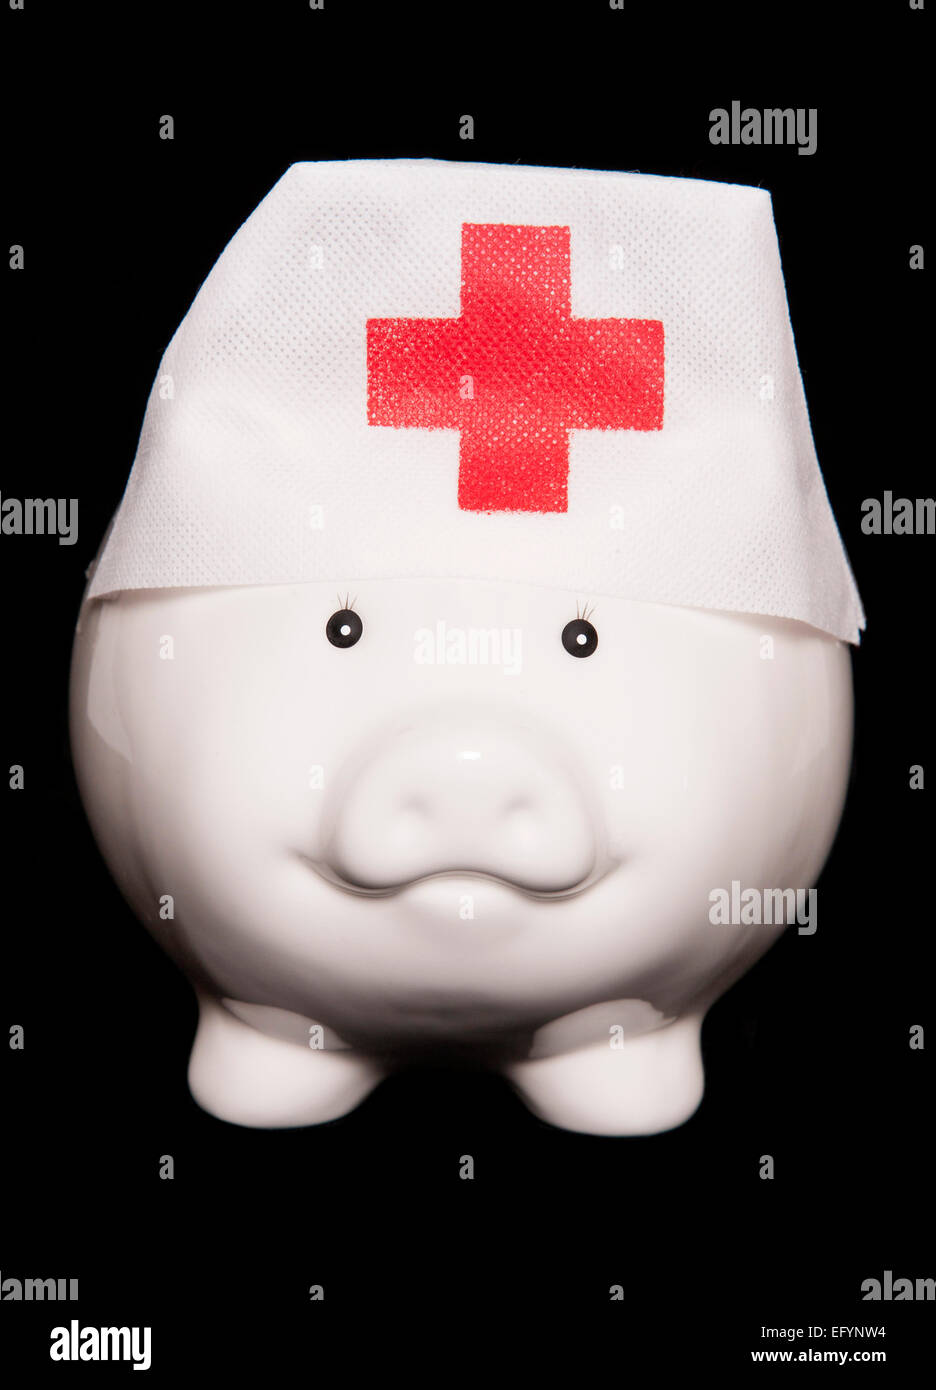 spending money on health care cutout - Stock Image